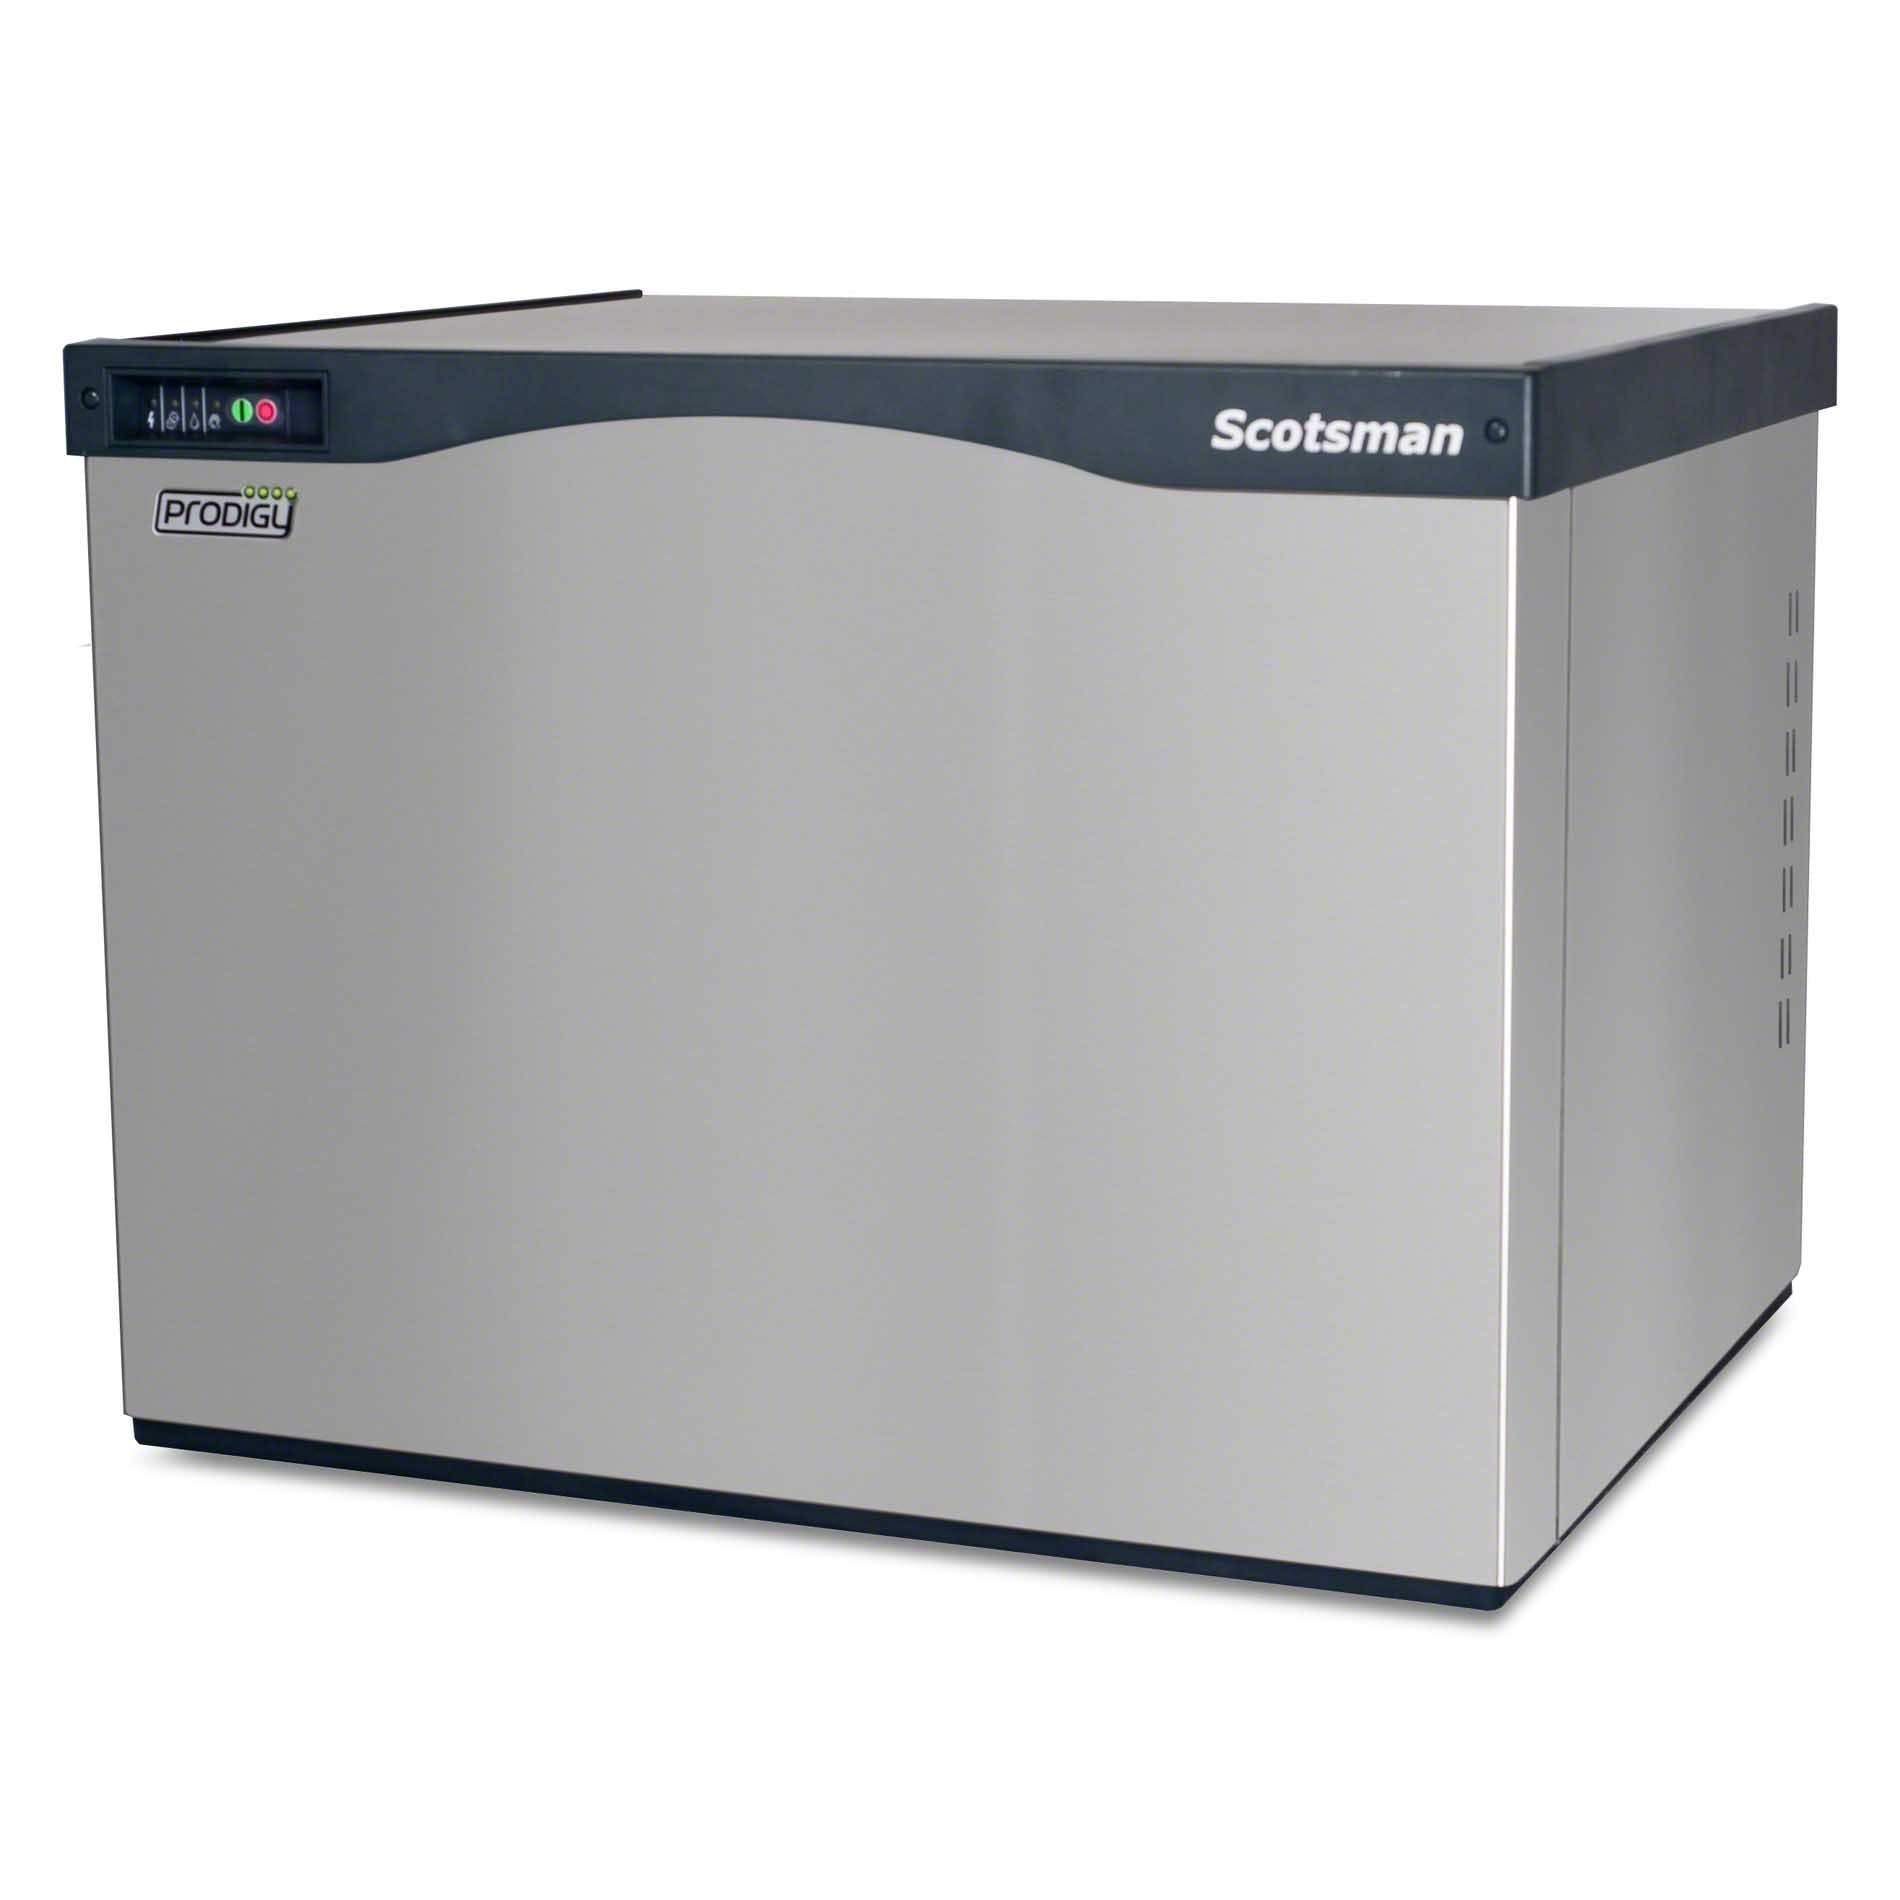 Scotsman - C0330MW-1A 400 lb Full Size Cube Ice Machine - Prodigy Series Ice machine sold by Food Service Warehouse